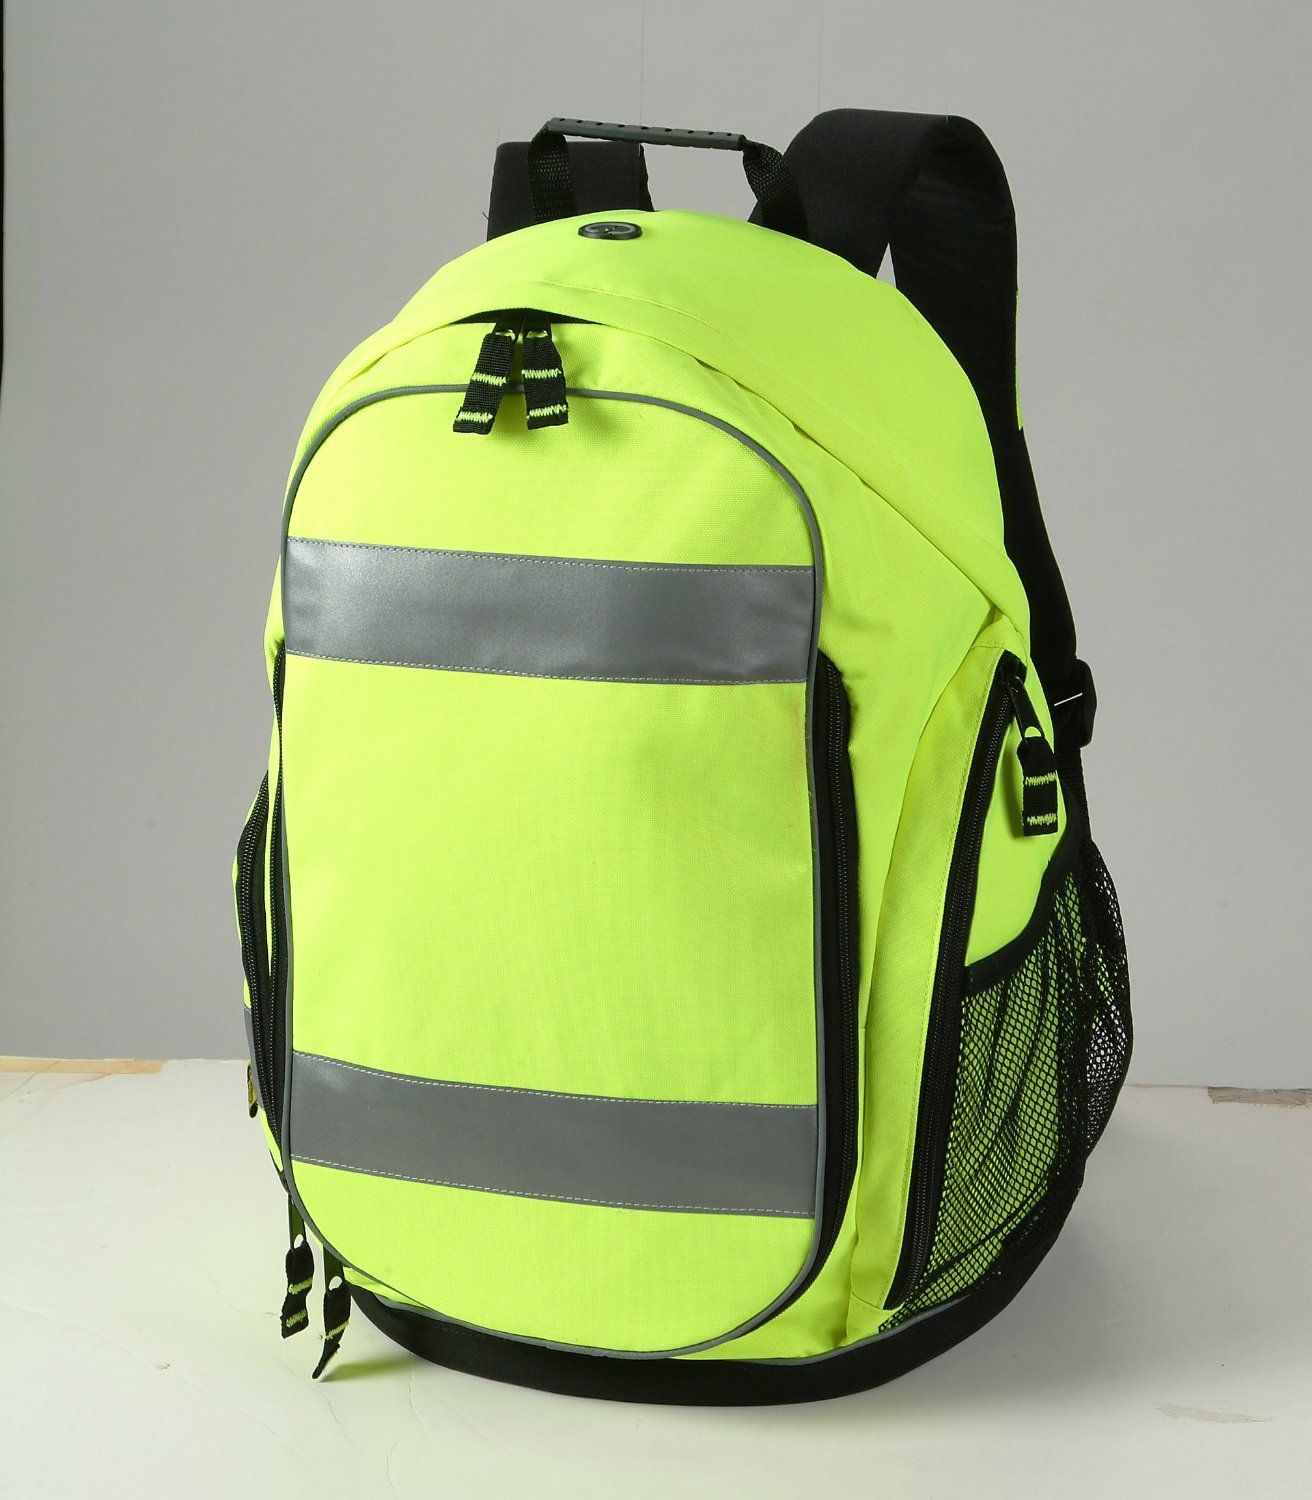 "BP6501 BACKPACK DIMENSION 13.5""(W)X 9.5""(D"